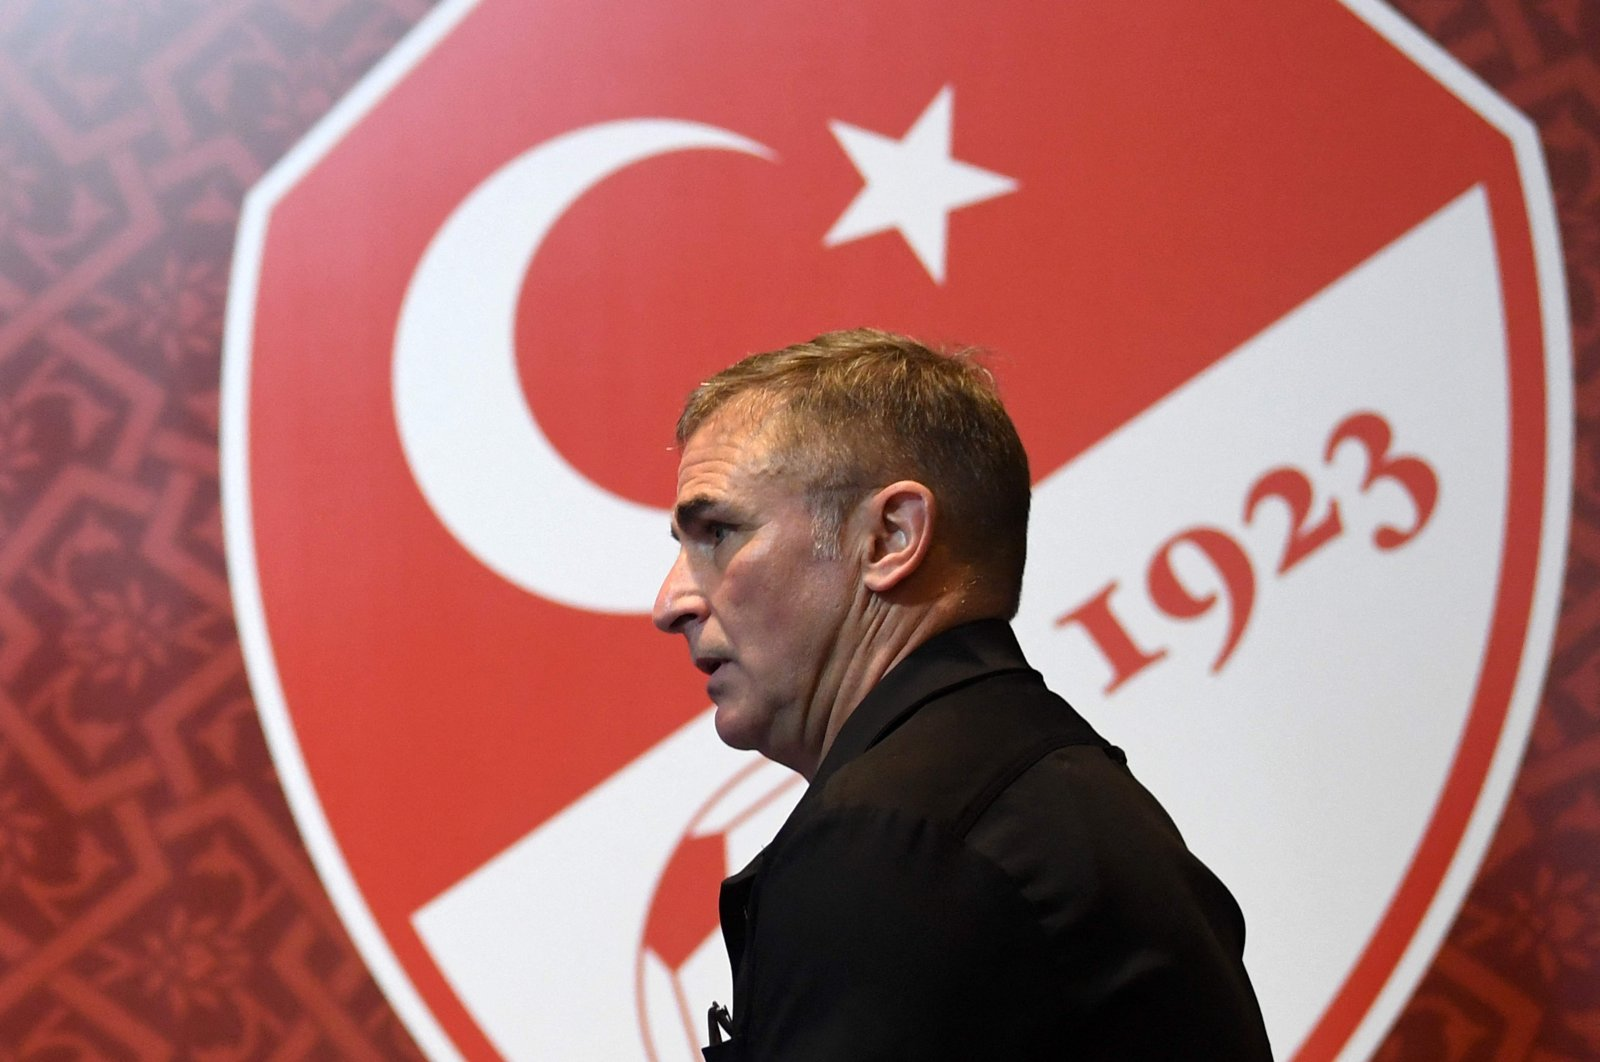 Turkey national football team's newly appointed German head coach Stefan Kuntz attends a signing ceremony at Turkish Football Federation Riva Facilities in Istanbul, Turkey, Sept. 20, 2021. (AFP Photo)